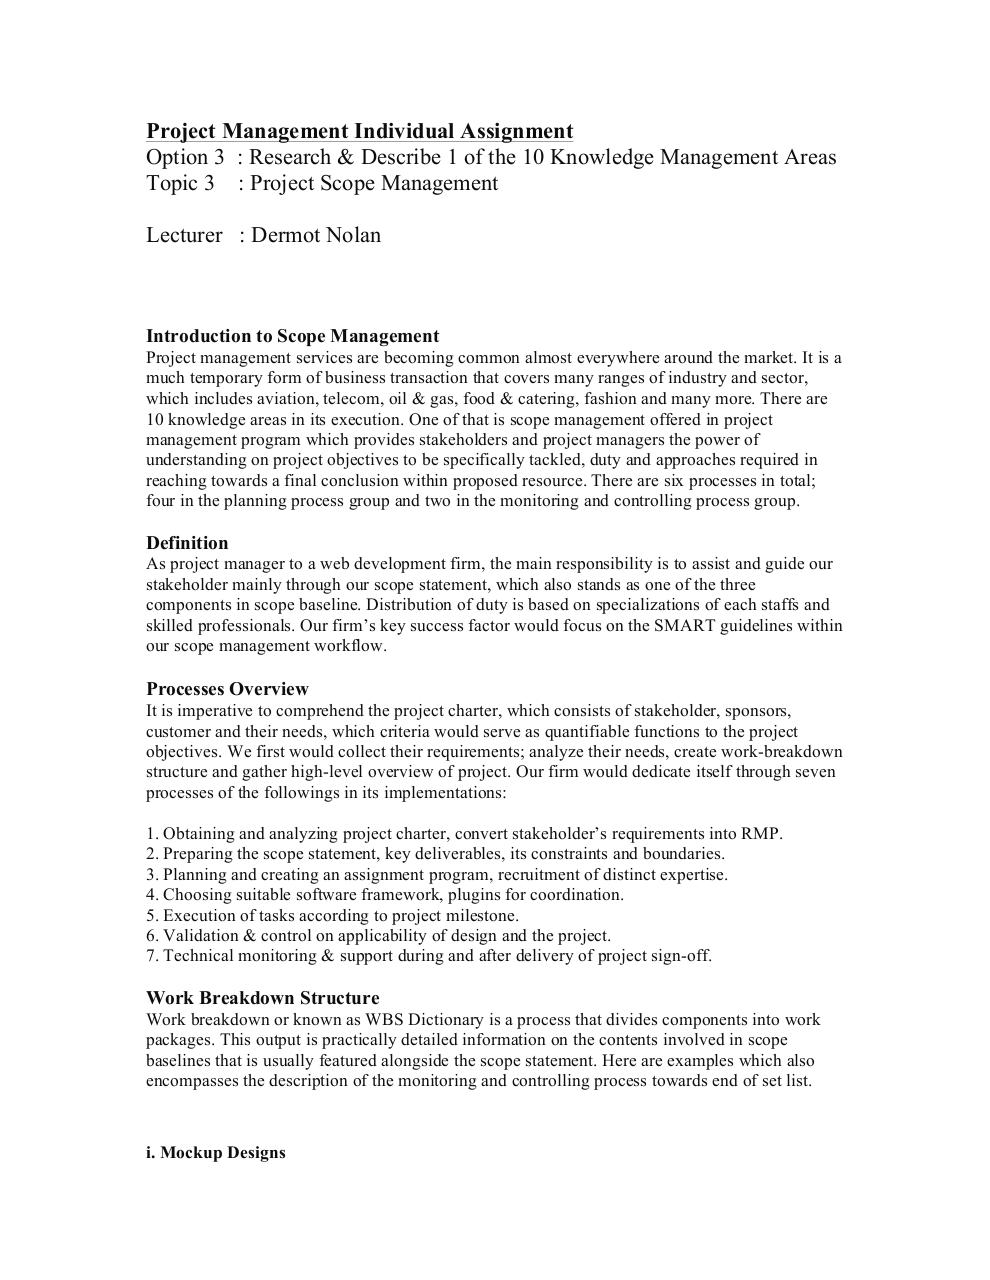 Project Management Individual Assignment.pdf - page 1/3